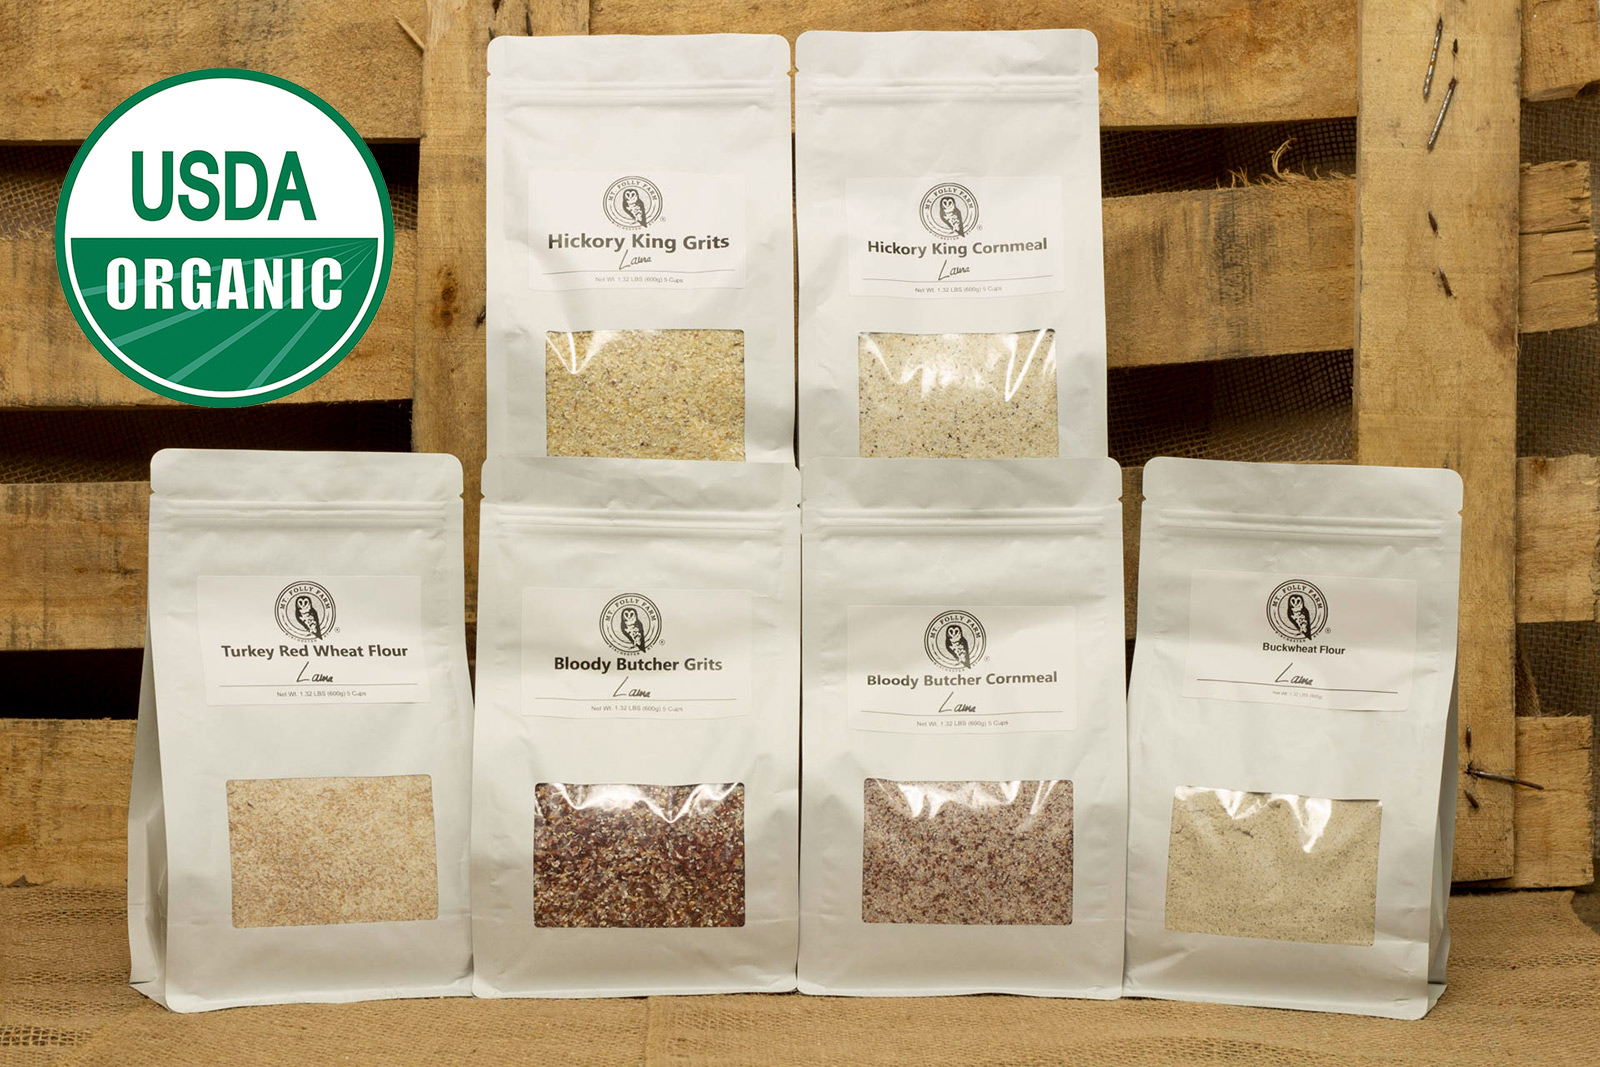 Organic heirloom grains, cornmeal, grits, and flour from Laura Freeman's Mt. Folly Farm.